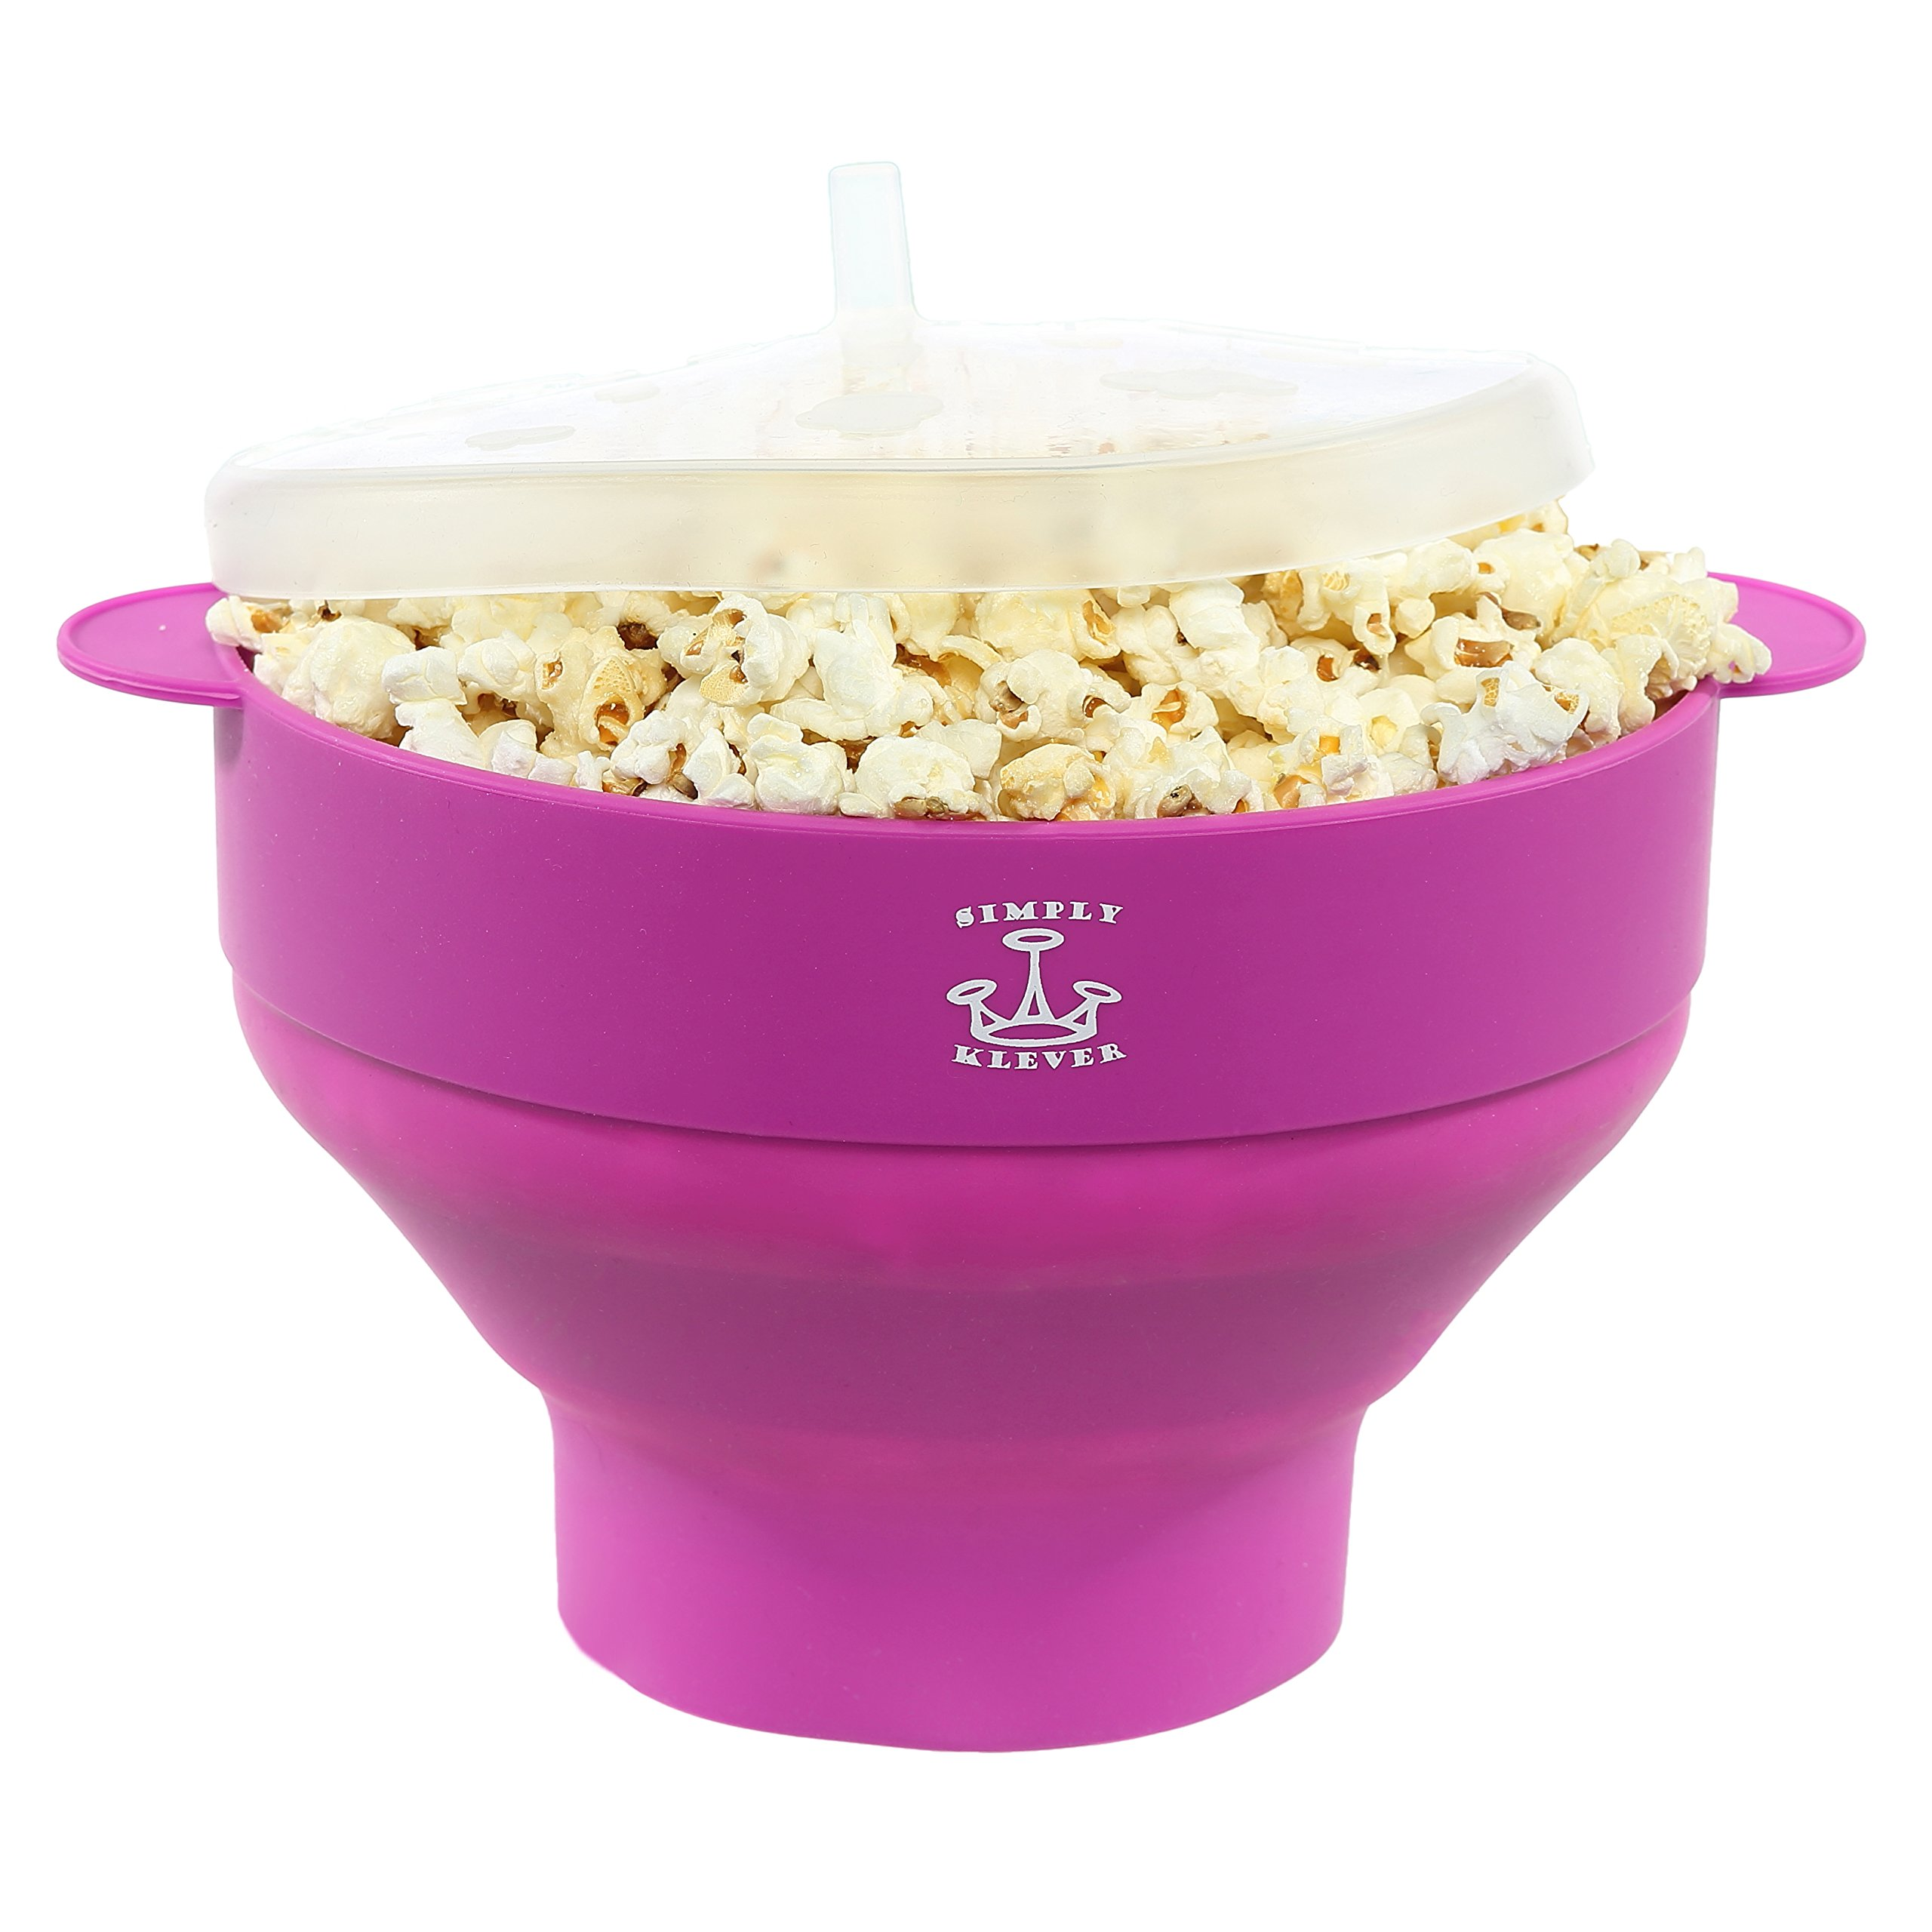 Simply Klever Microwave Popcorn Popper, Silicone Popcorn Maker, Collapsible Bowl BPA Free (Purple) - THE HEALTHY LOW CALORIE SNACK